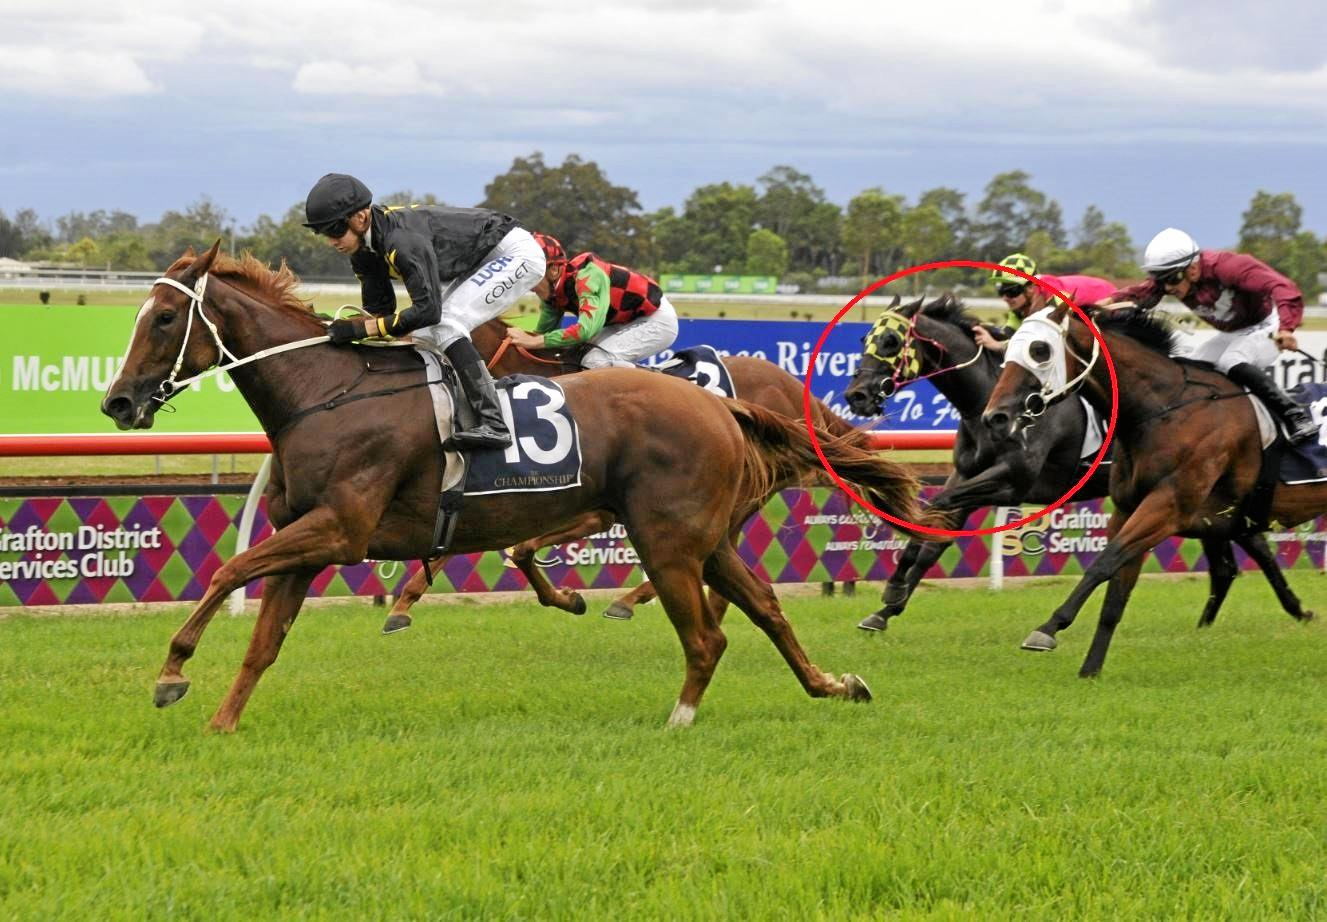 Scott Henley-trained Rakhish (pink silks) ran fourth in the $150,000 NRRA Country Championships qualifier won by Matthew Dunn-trained La Scopa at Clarence River Jockey Club on 17th March, 2019.